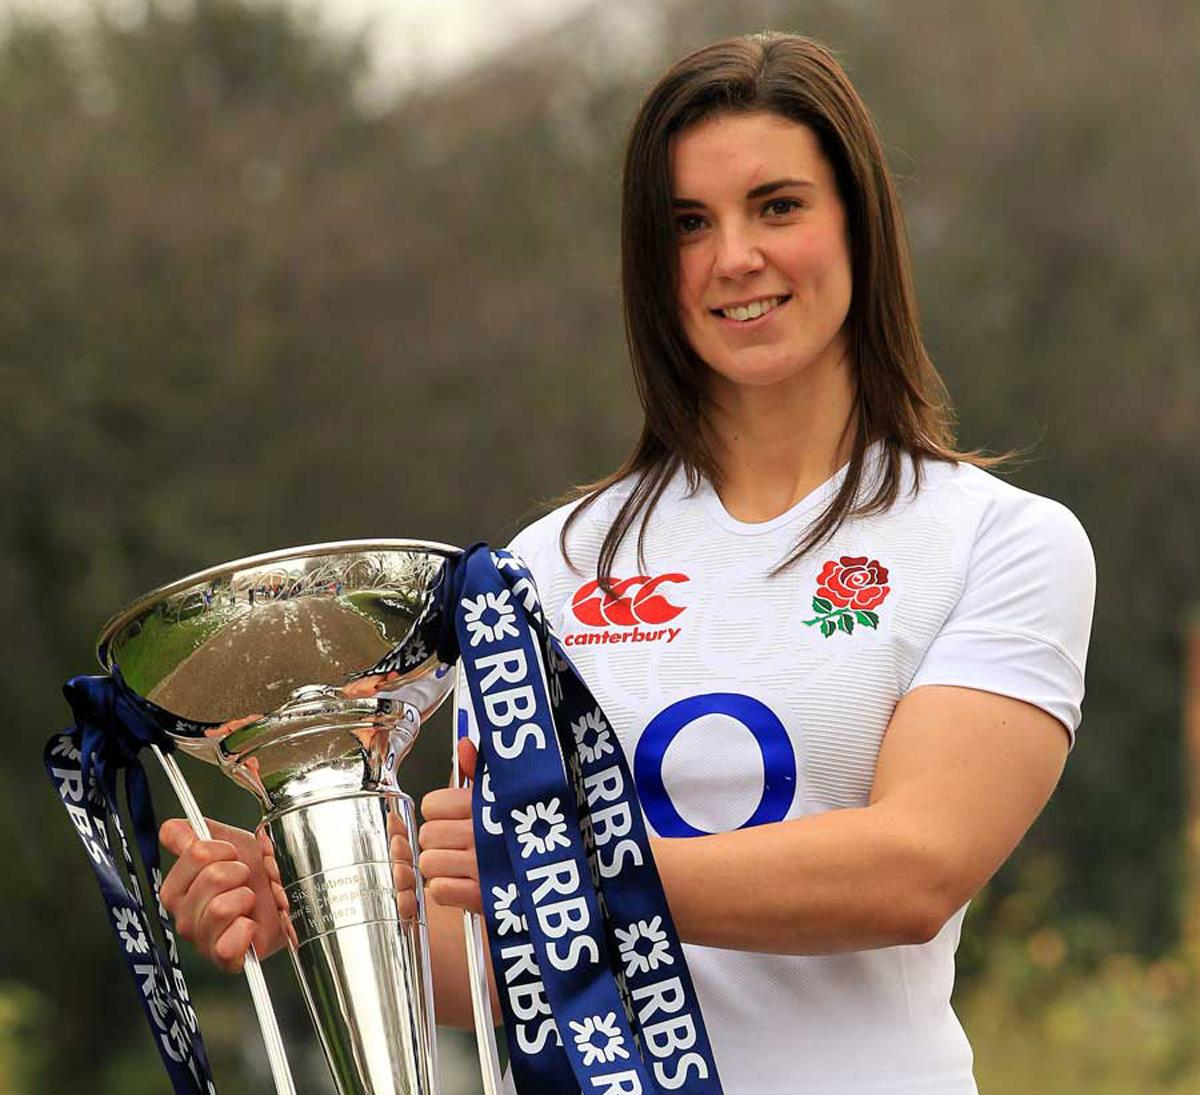 Sarah Hunter, part of the triumphant England Women's Rugby Team, received an MBE